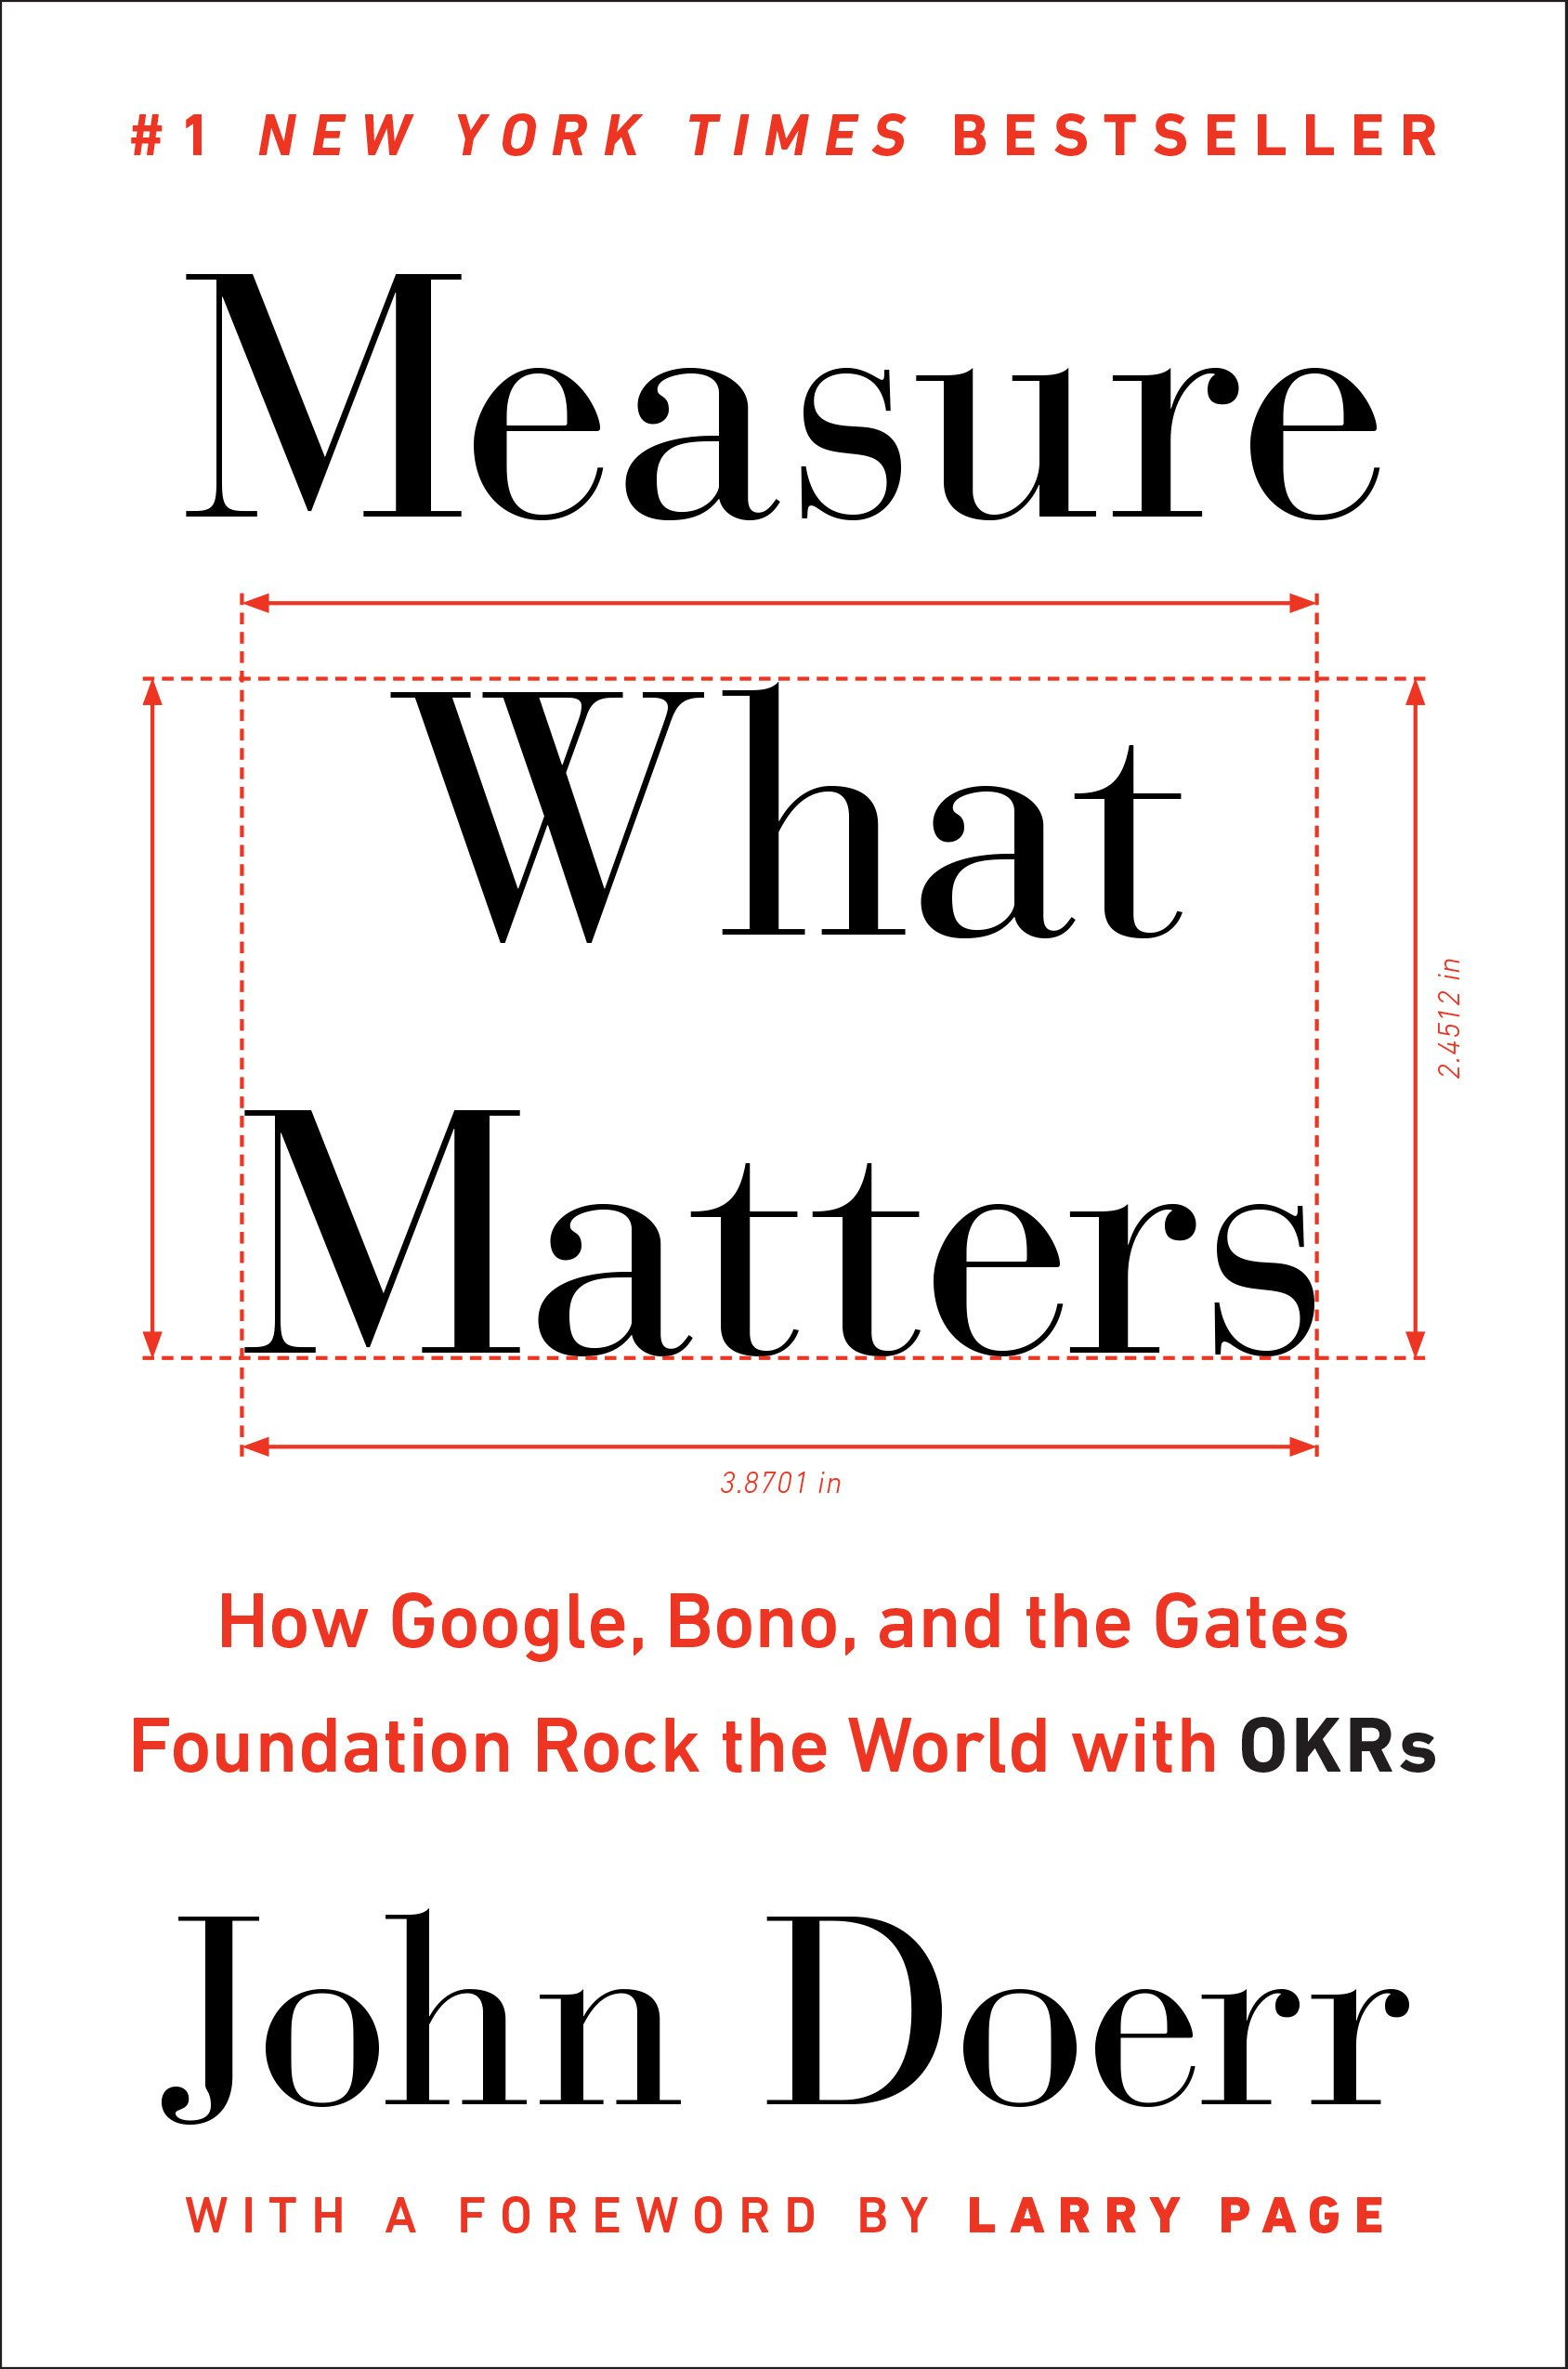 MeasureWhatMatters_JohnDoerr.jpg